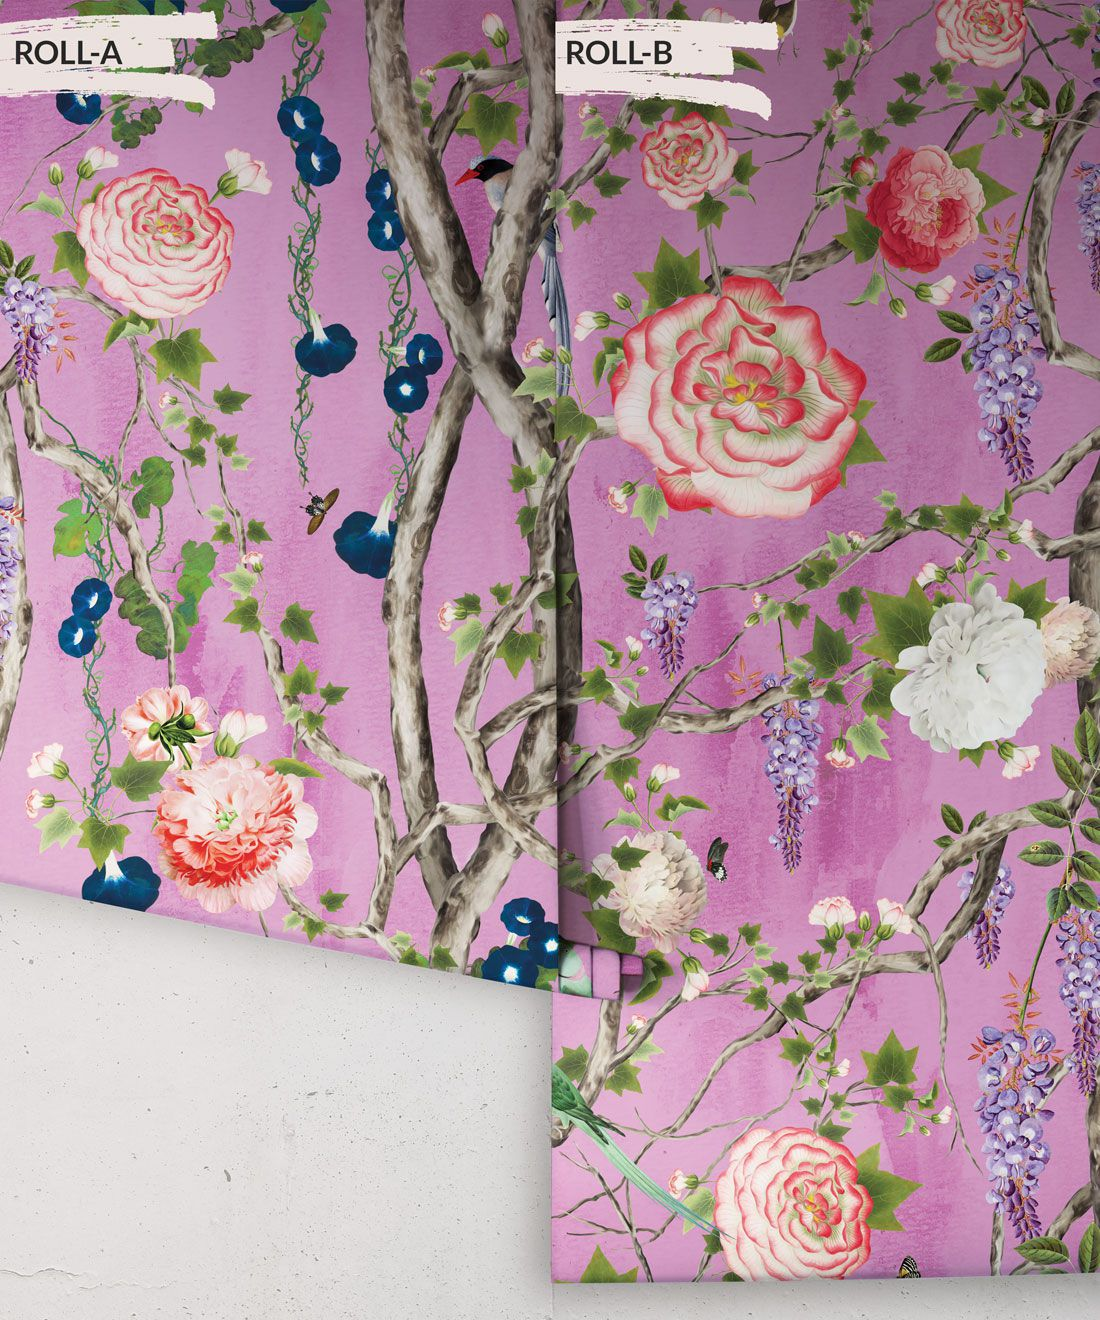 Empress Wallpaper • Romantic Wallpaper • Floral Wallpaper • Chinoiserie Wallpaper • Plum color wallpaper rolls